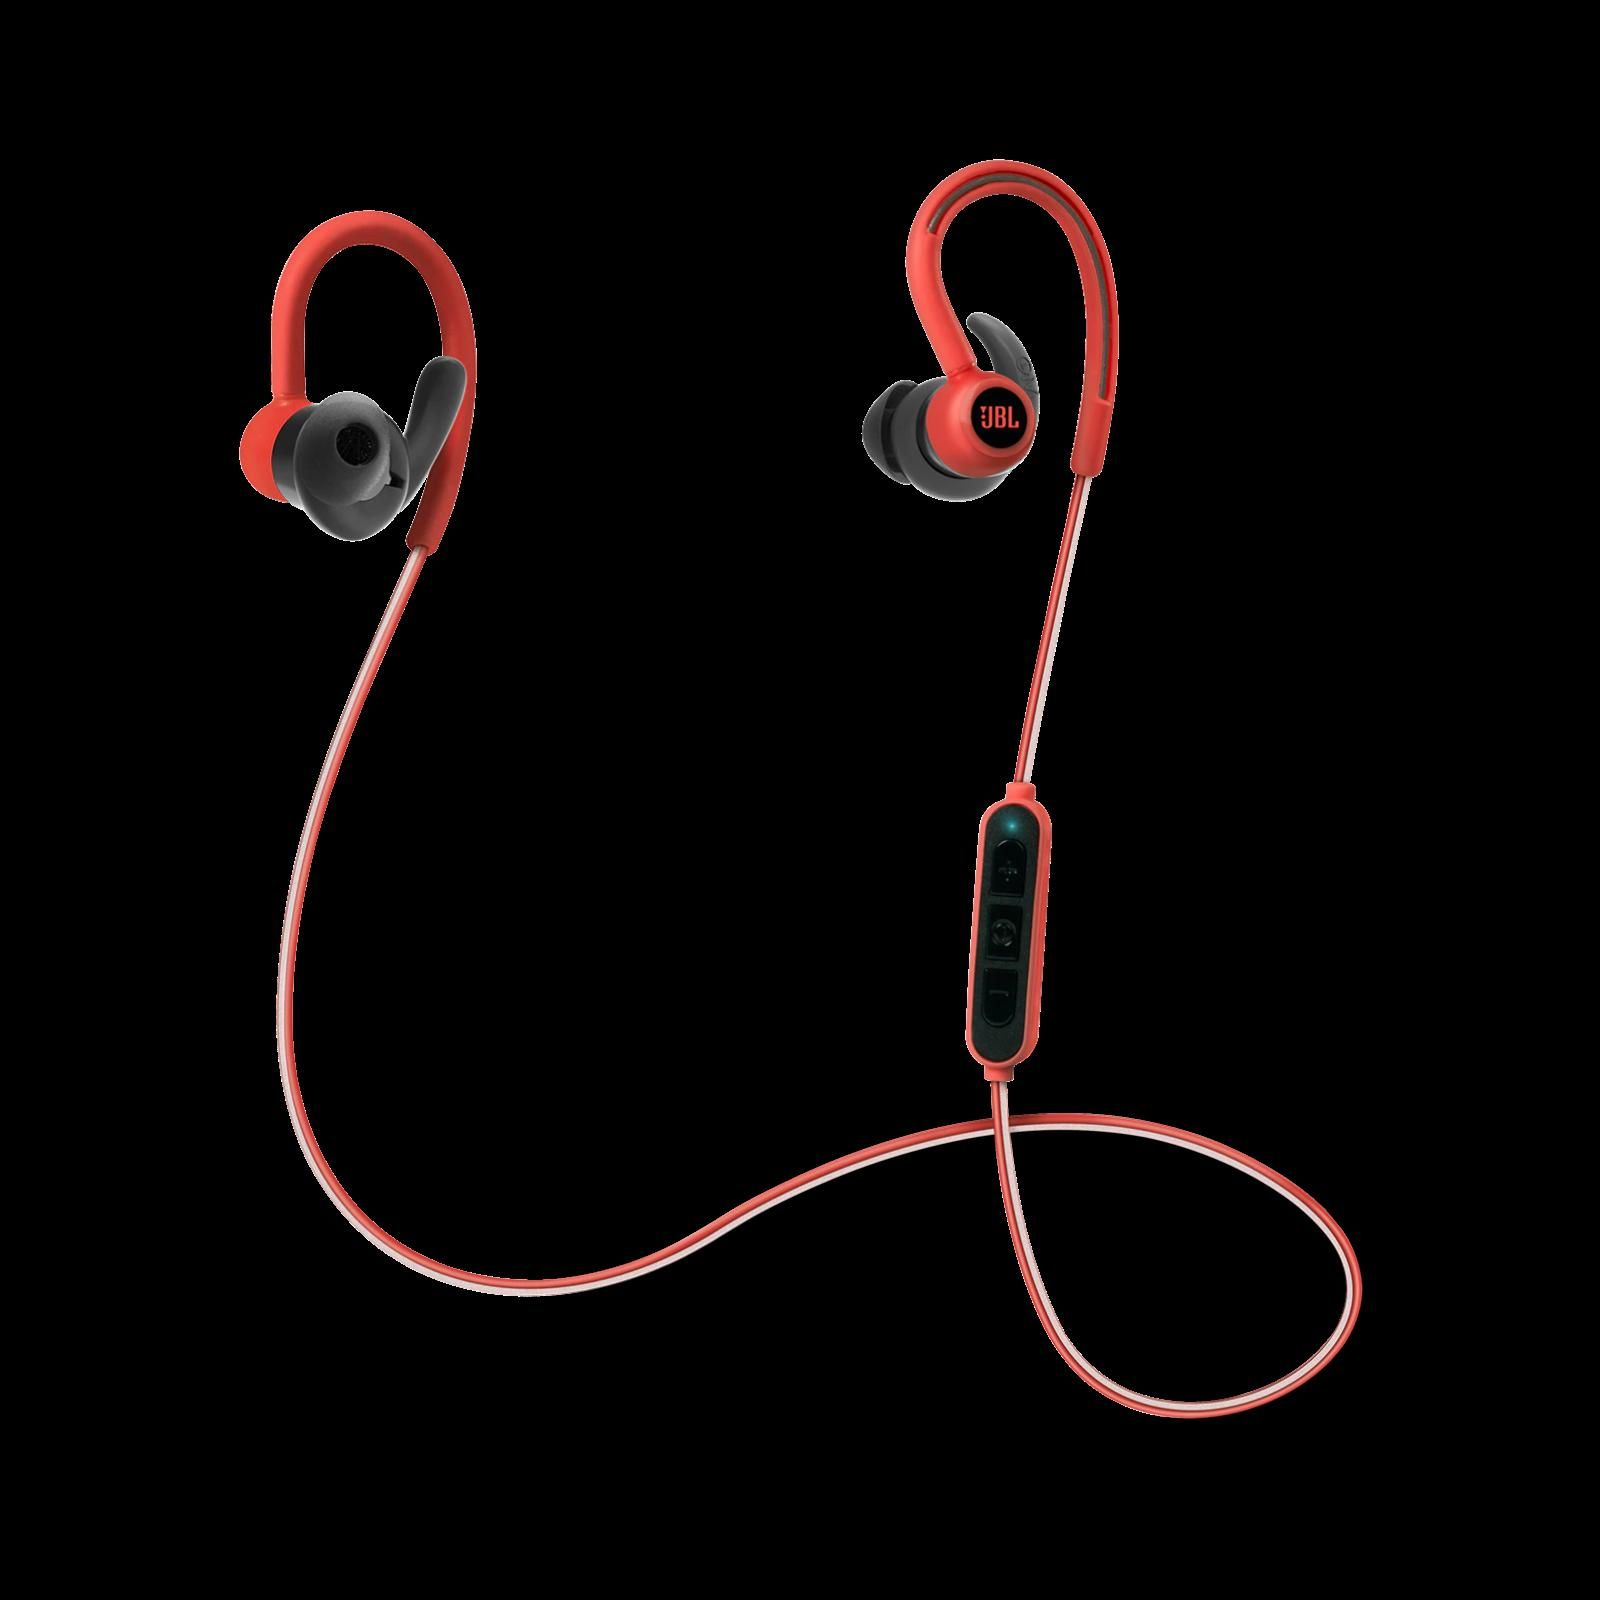 9966a1b5dea JBL Reflect Contour Bluetooth Wireless Sports Headphones Red in 2019 ...